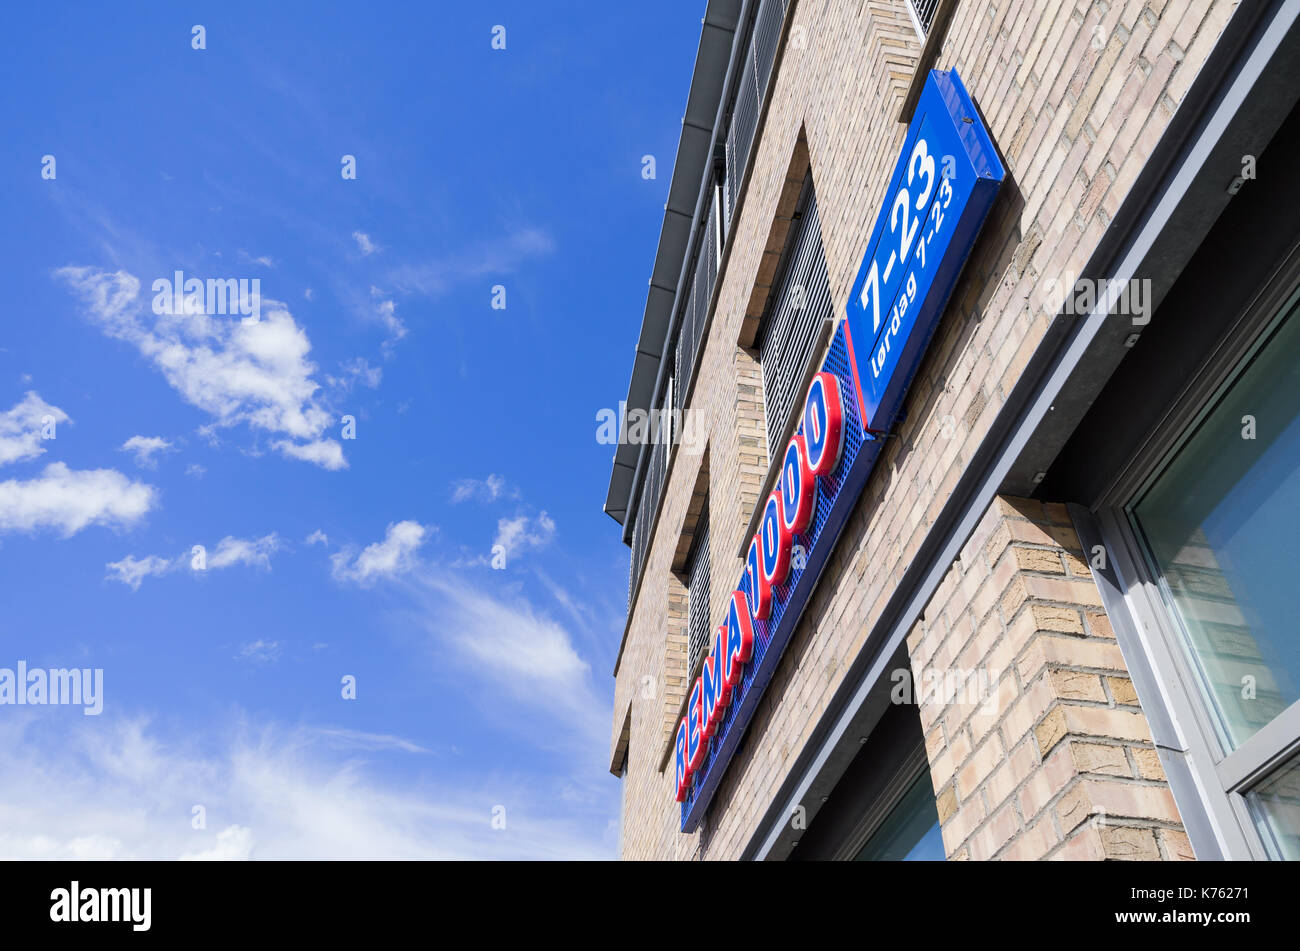 REMA 1000 sign at branch. REMA 1000 is a Norwegian no-frills supermarket chain with businesses in Norway and Denmark. Stock Photo